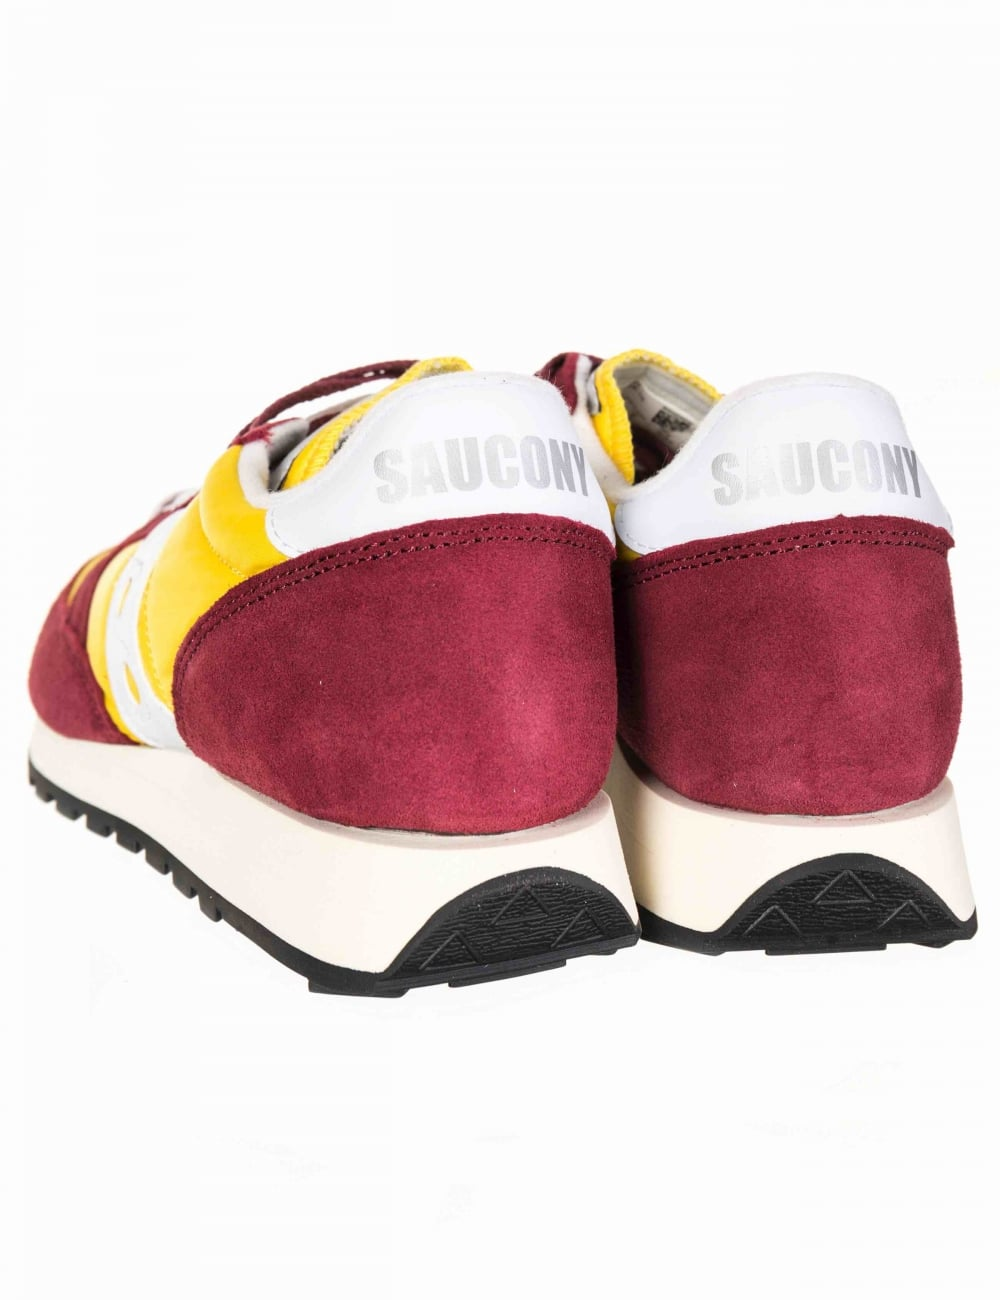 Saucony Jazz Vintage OG Shoes Burgundy//Yellow